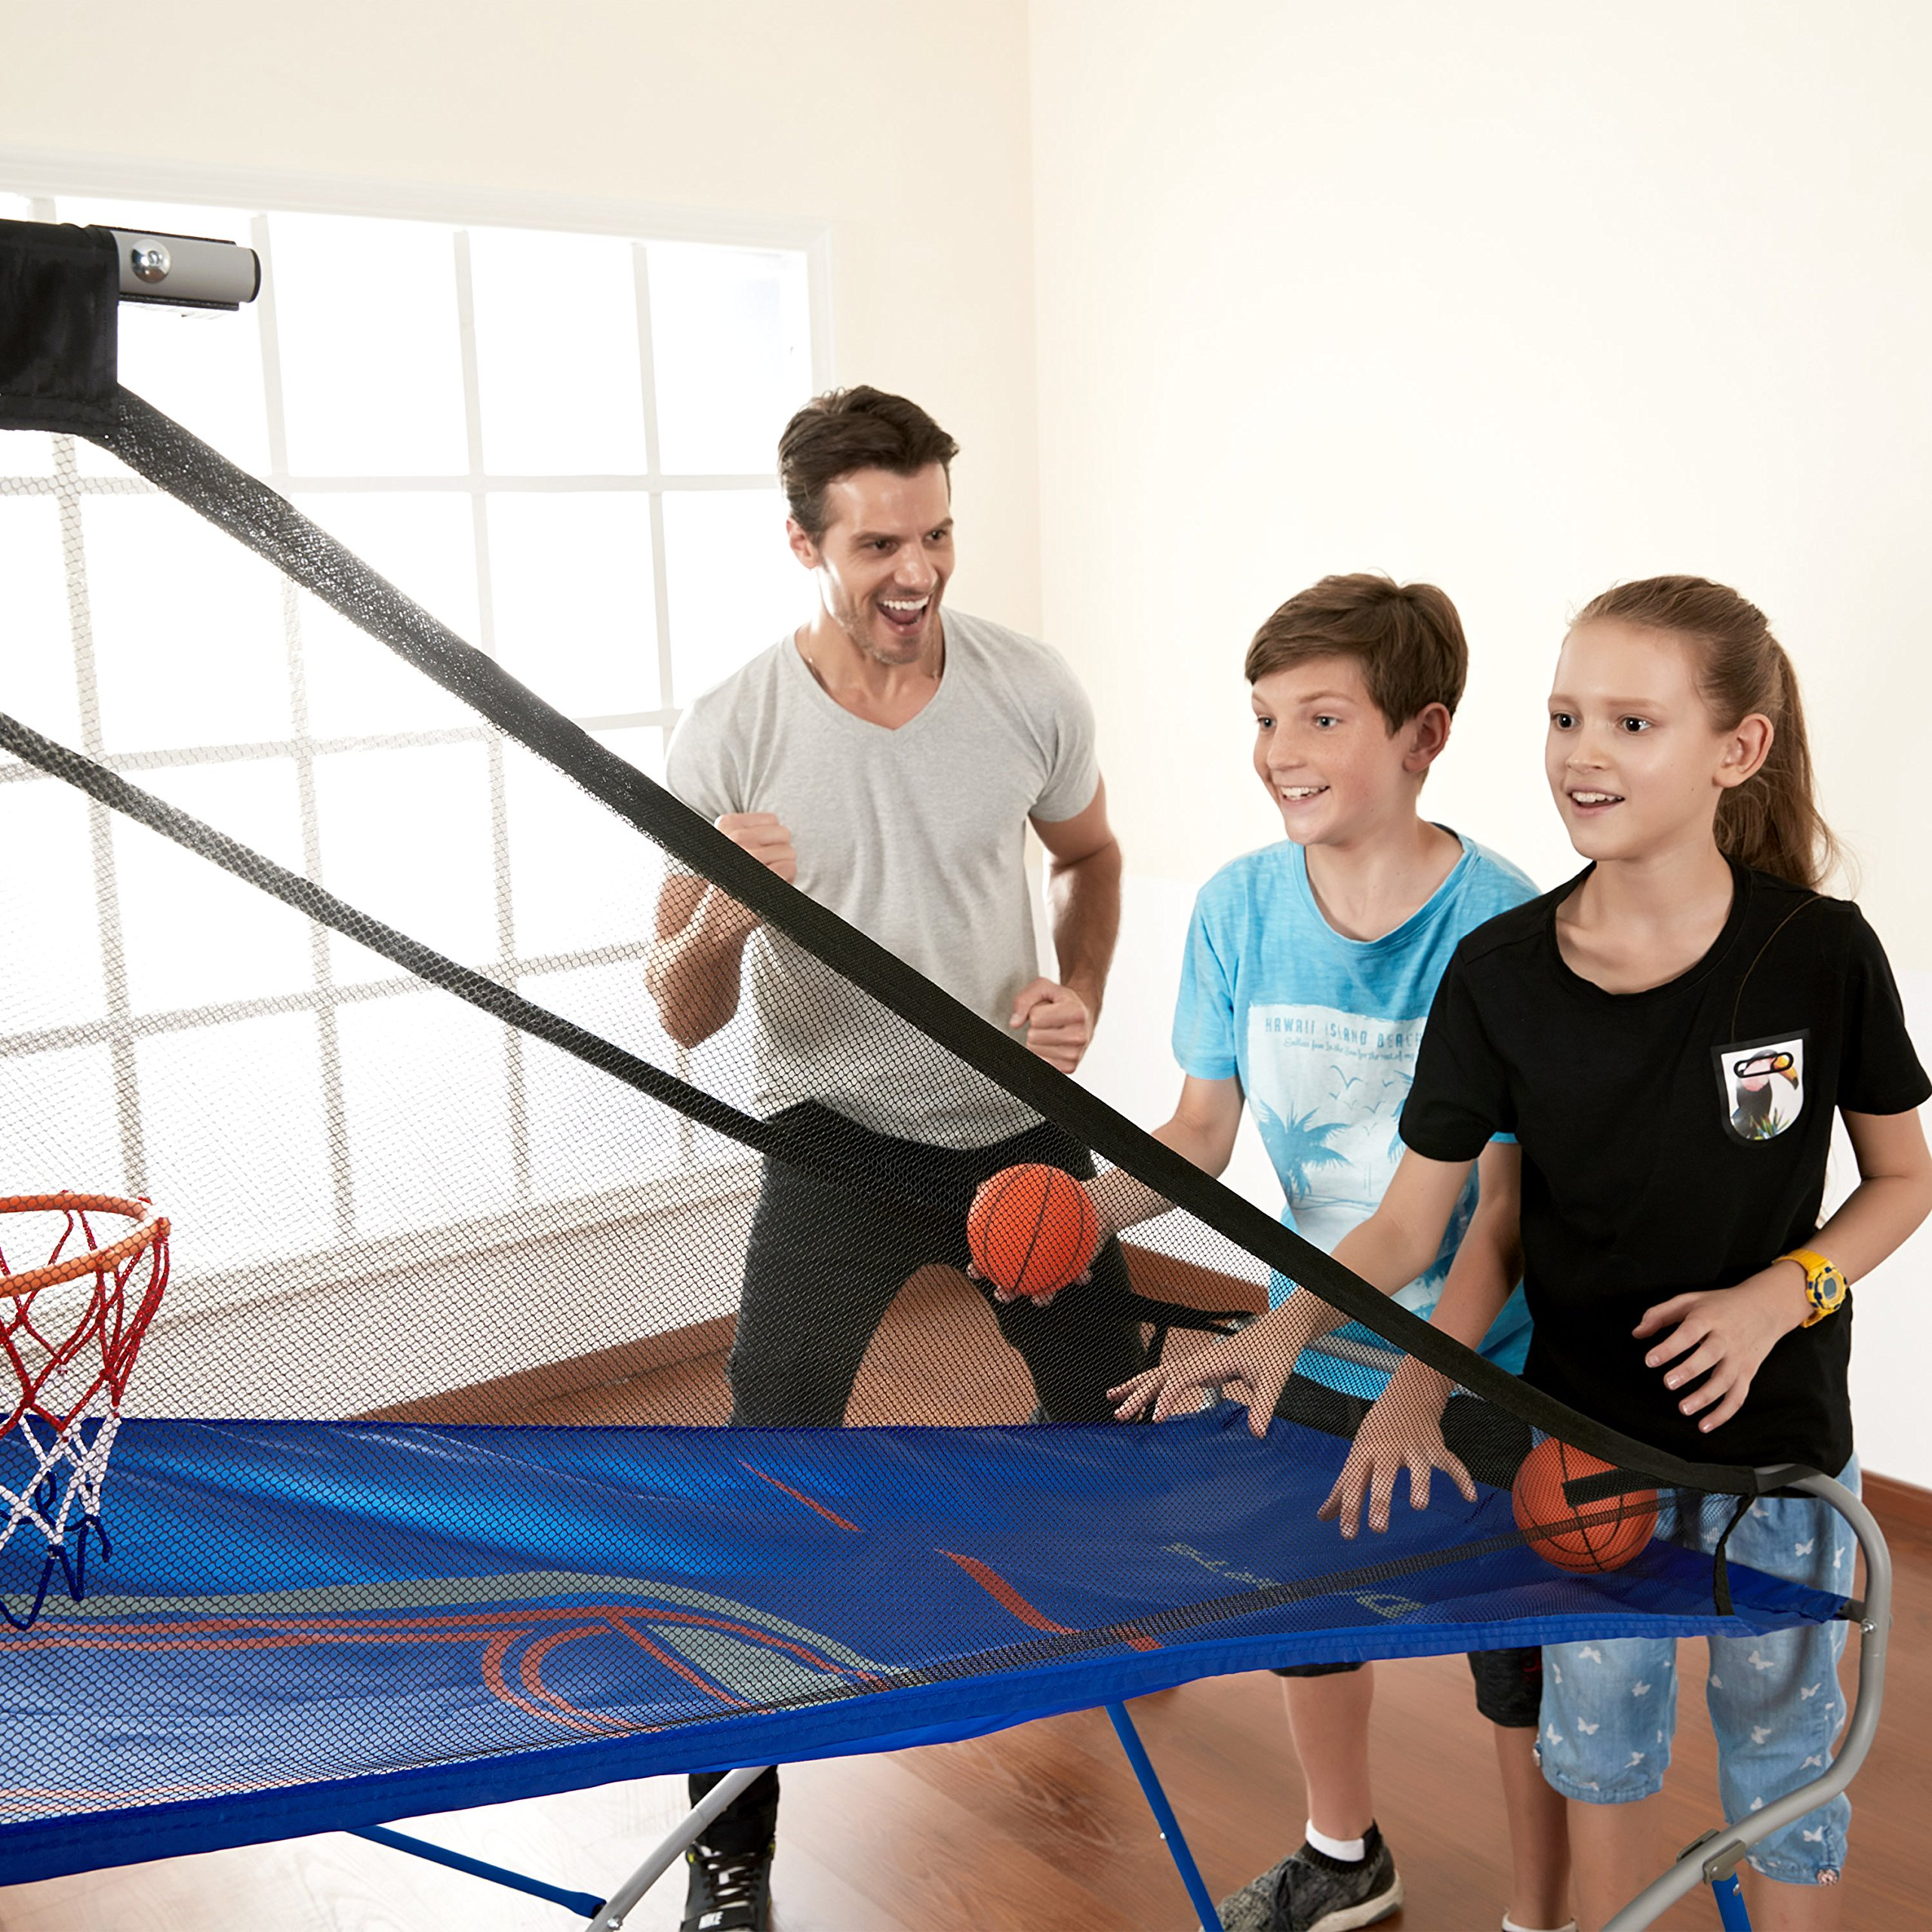 MD Sports BBG019_067M 4 in 1 Junior Basketball Game (Basketball, Soccer, Boxing & KNEE Hockey), Blue by MD Sports (Image #4)